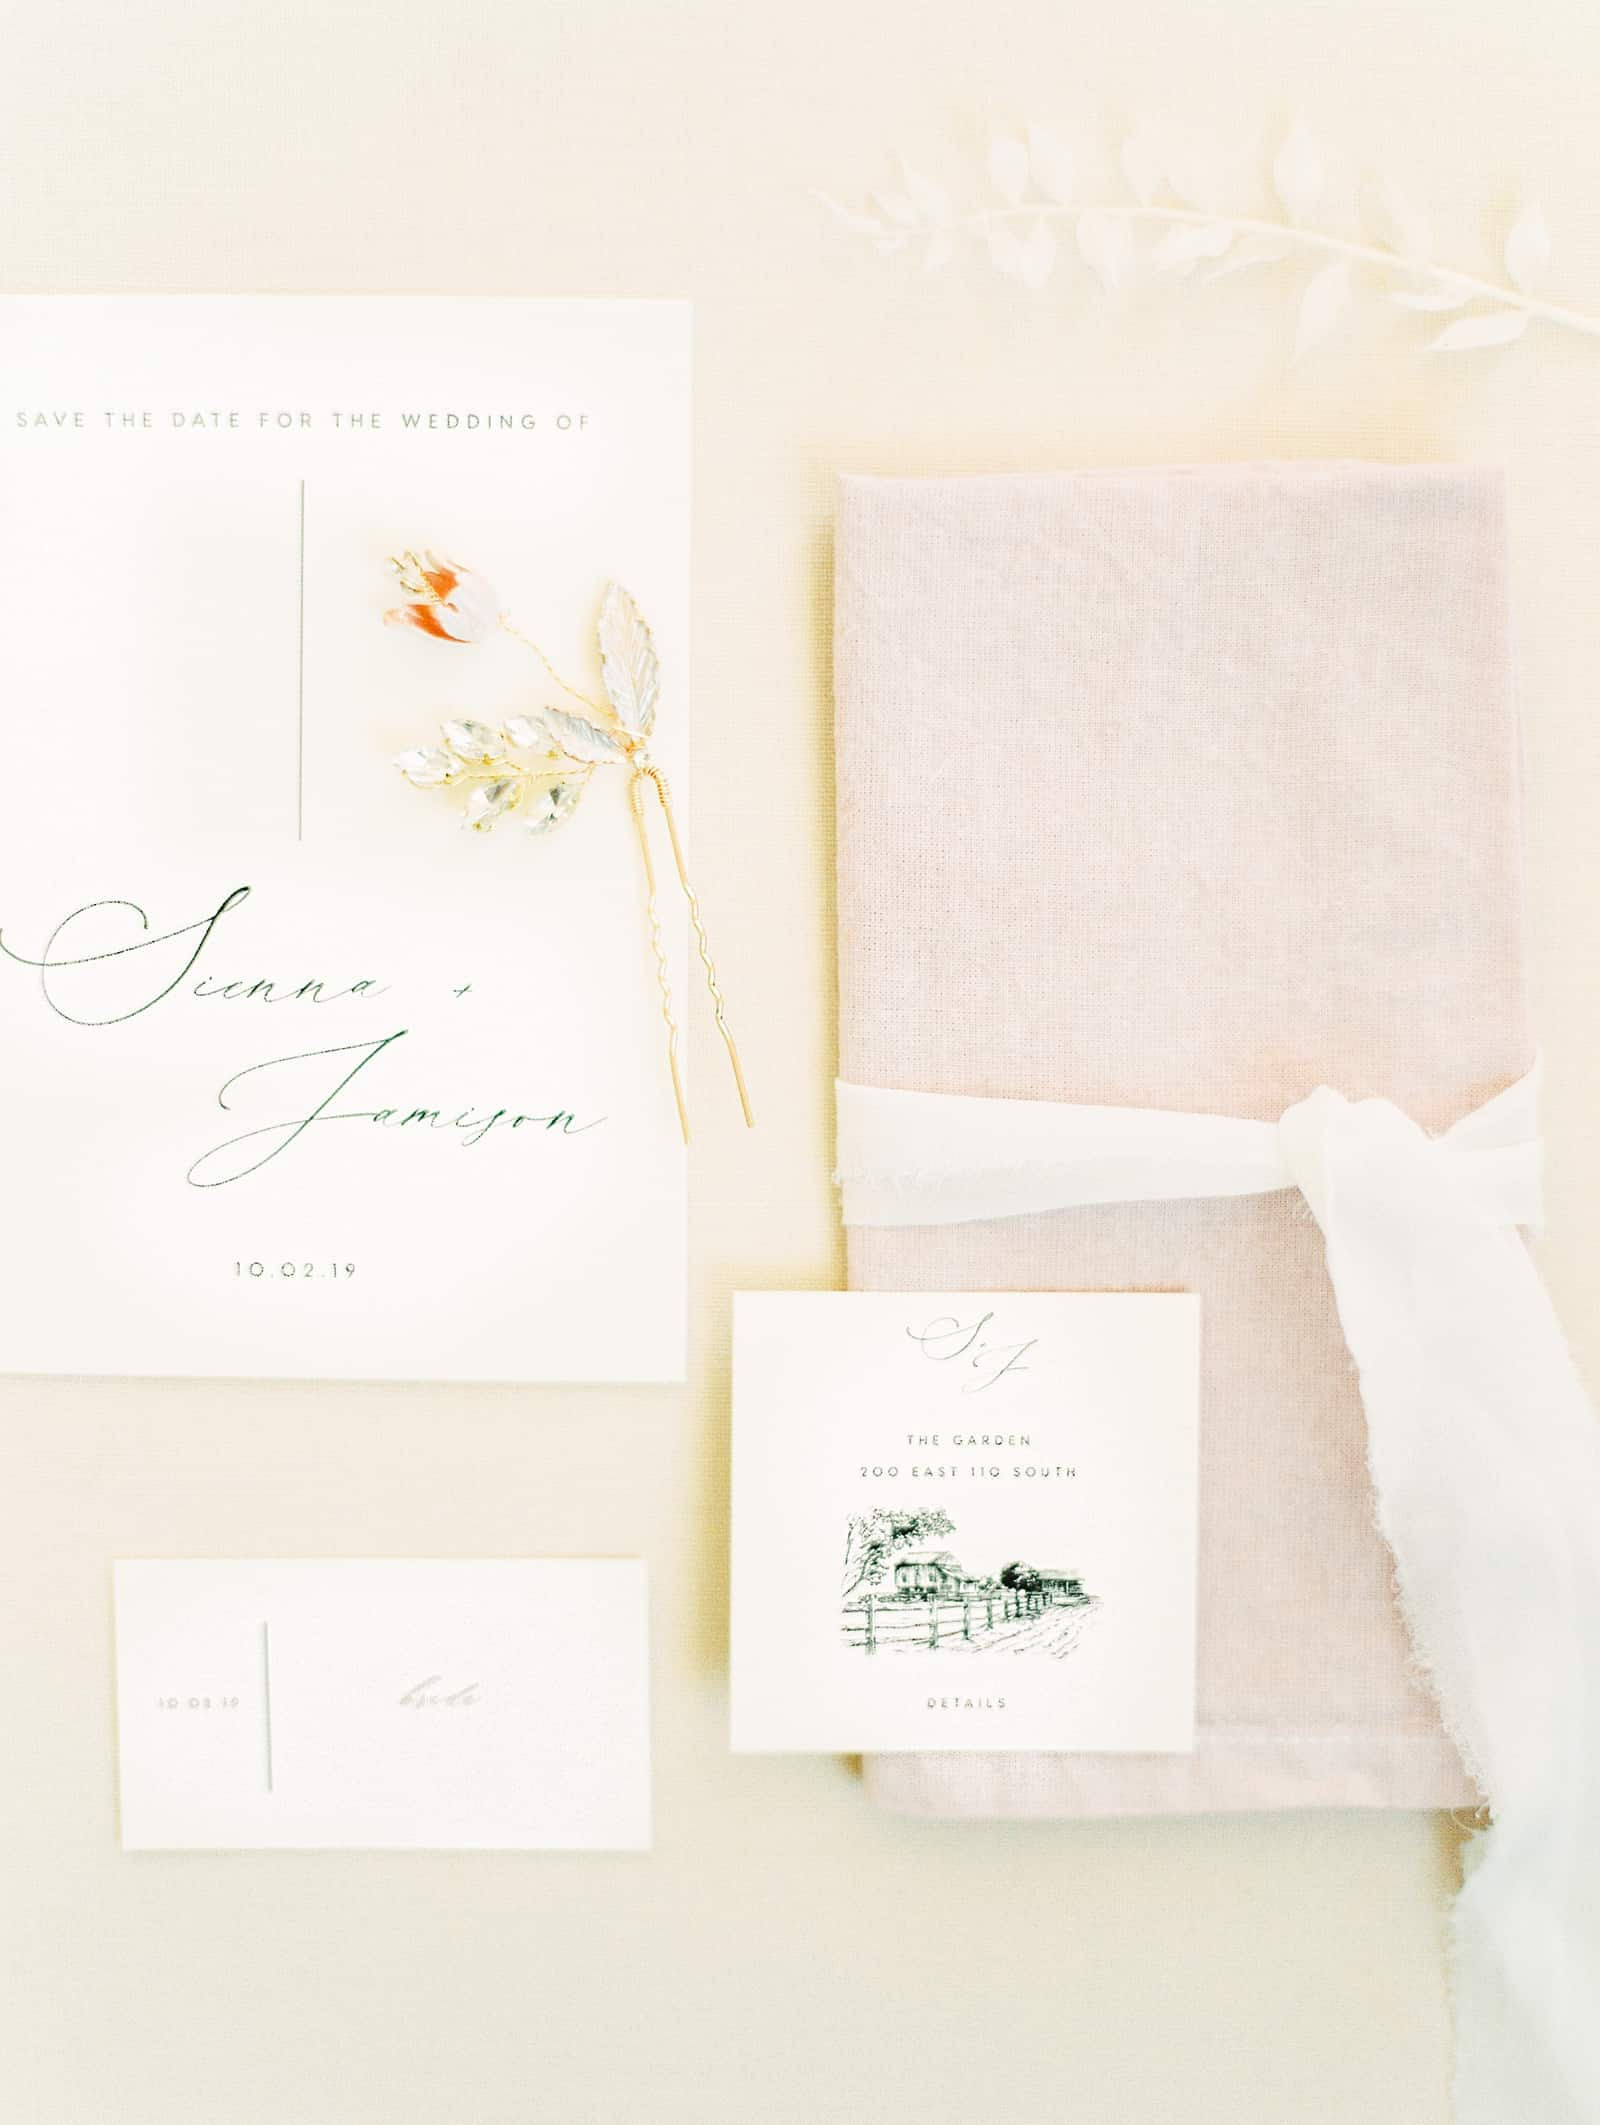 Modern minimalist wedding invitations with calligraphy and venue sketch